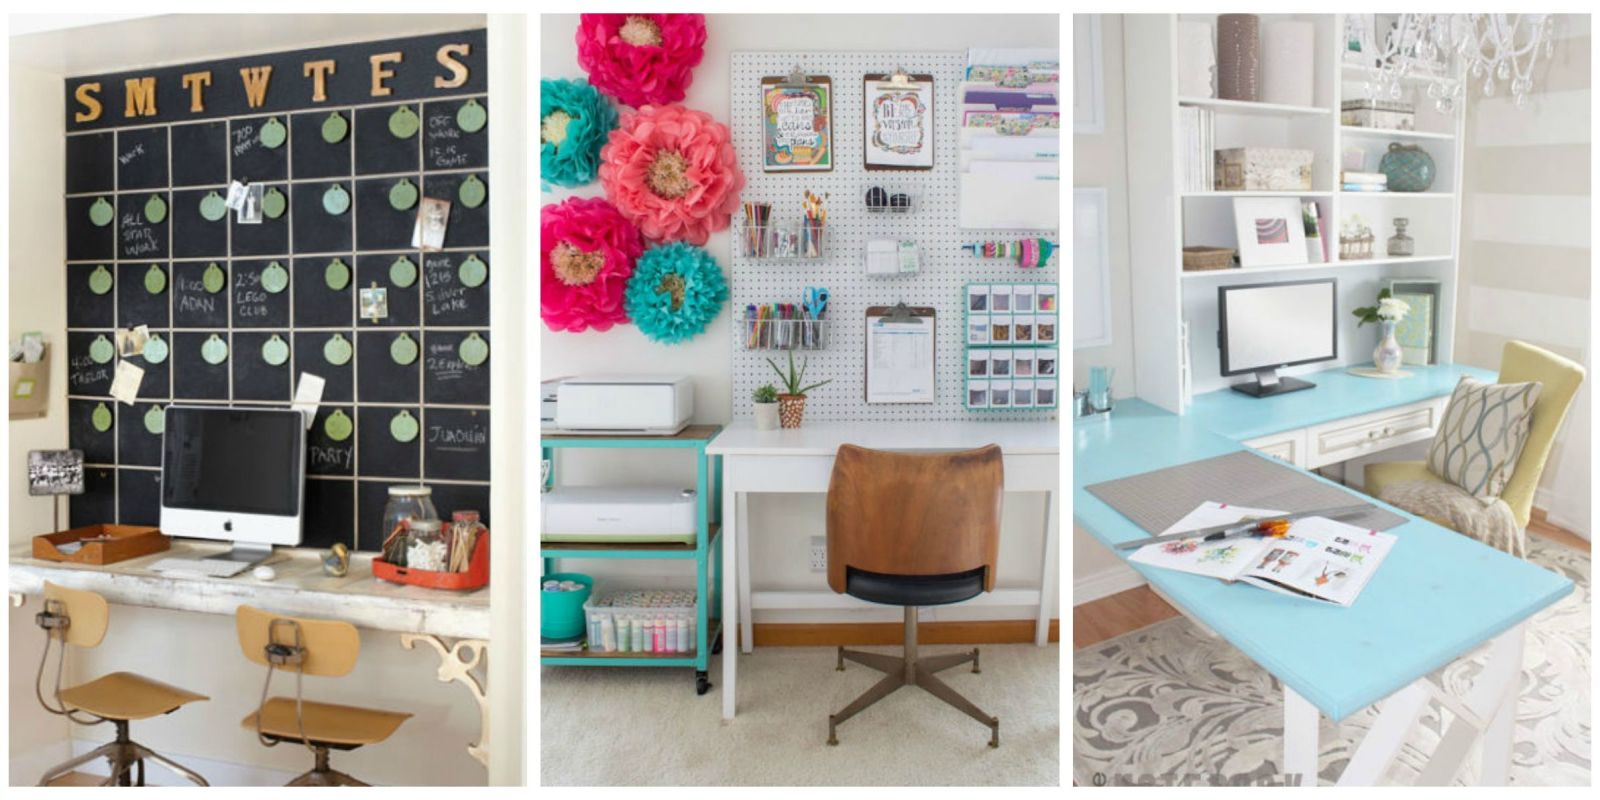 Home Office Decor Ideas home office ideas - how to decorate a home office